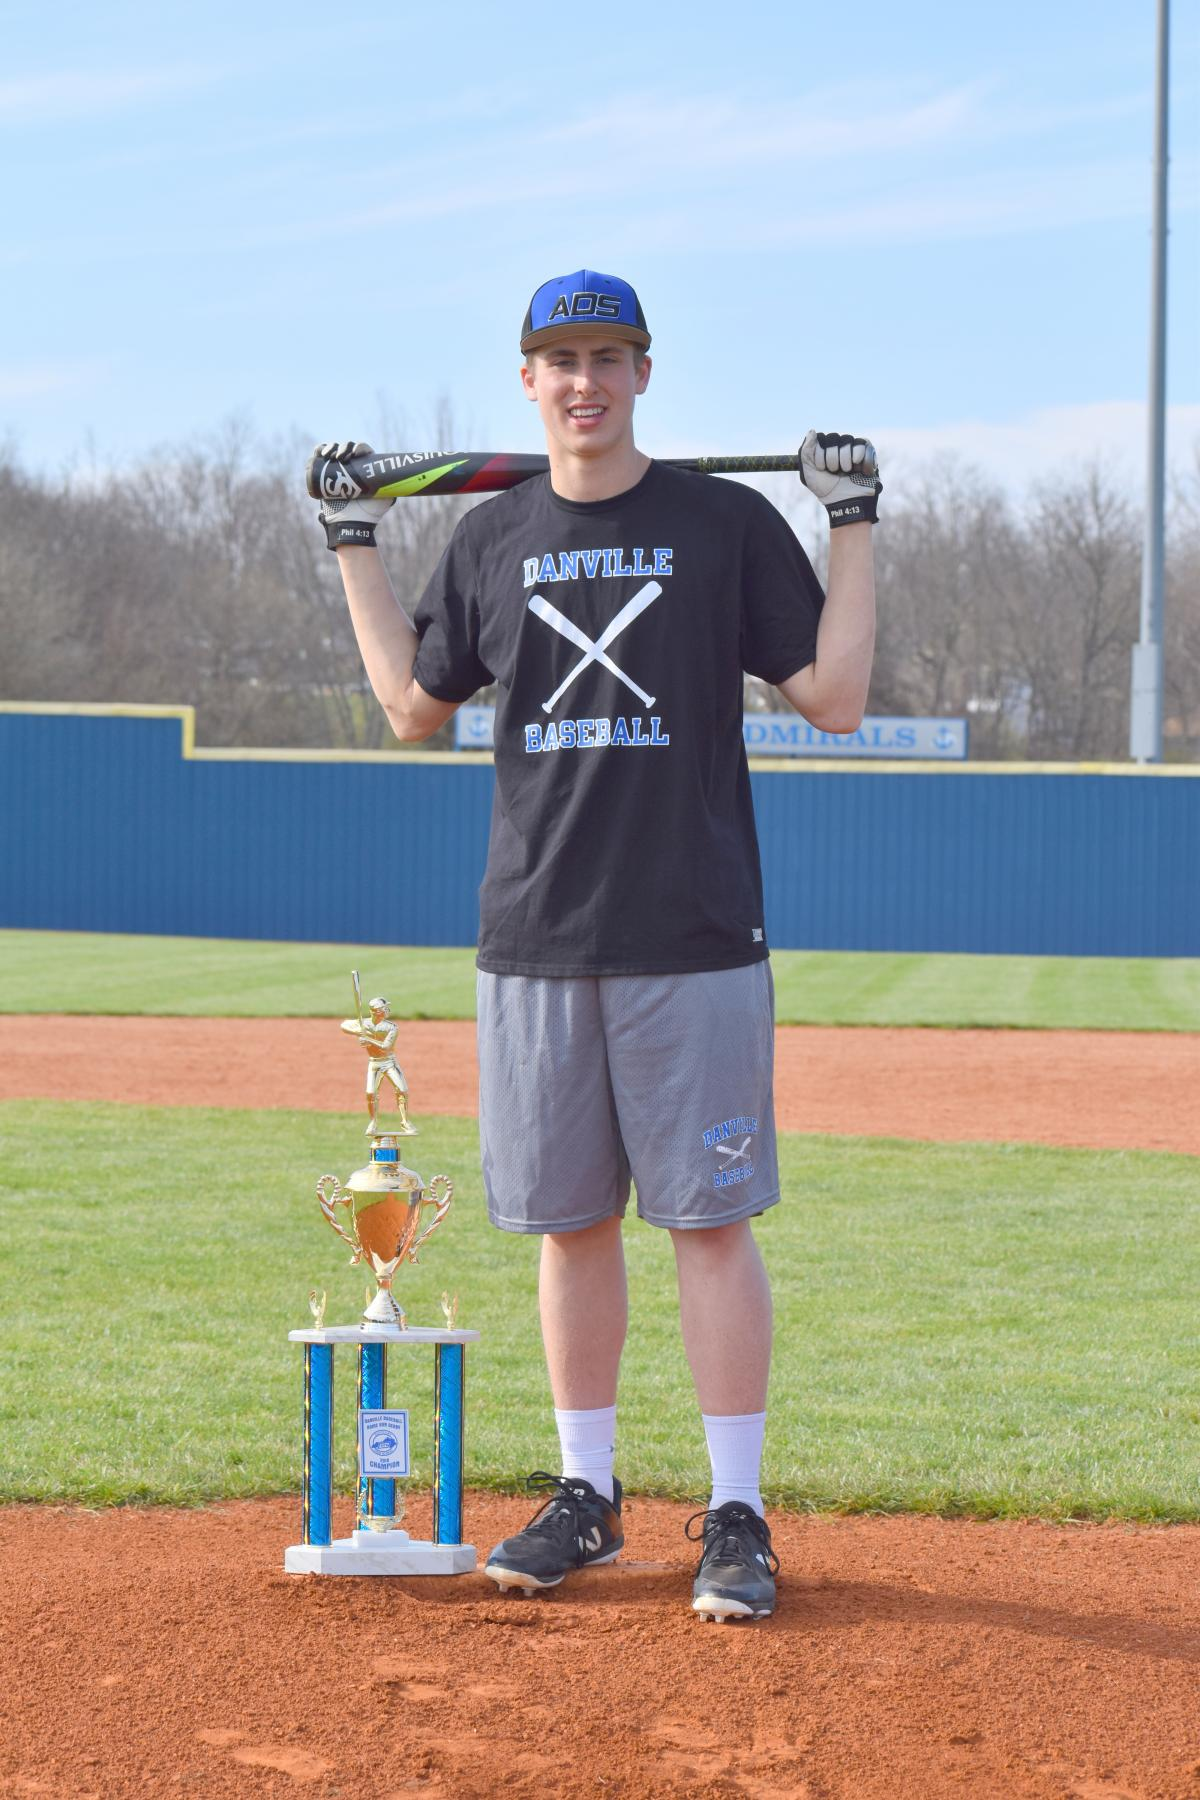 2018 Home Run Derby Winner